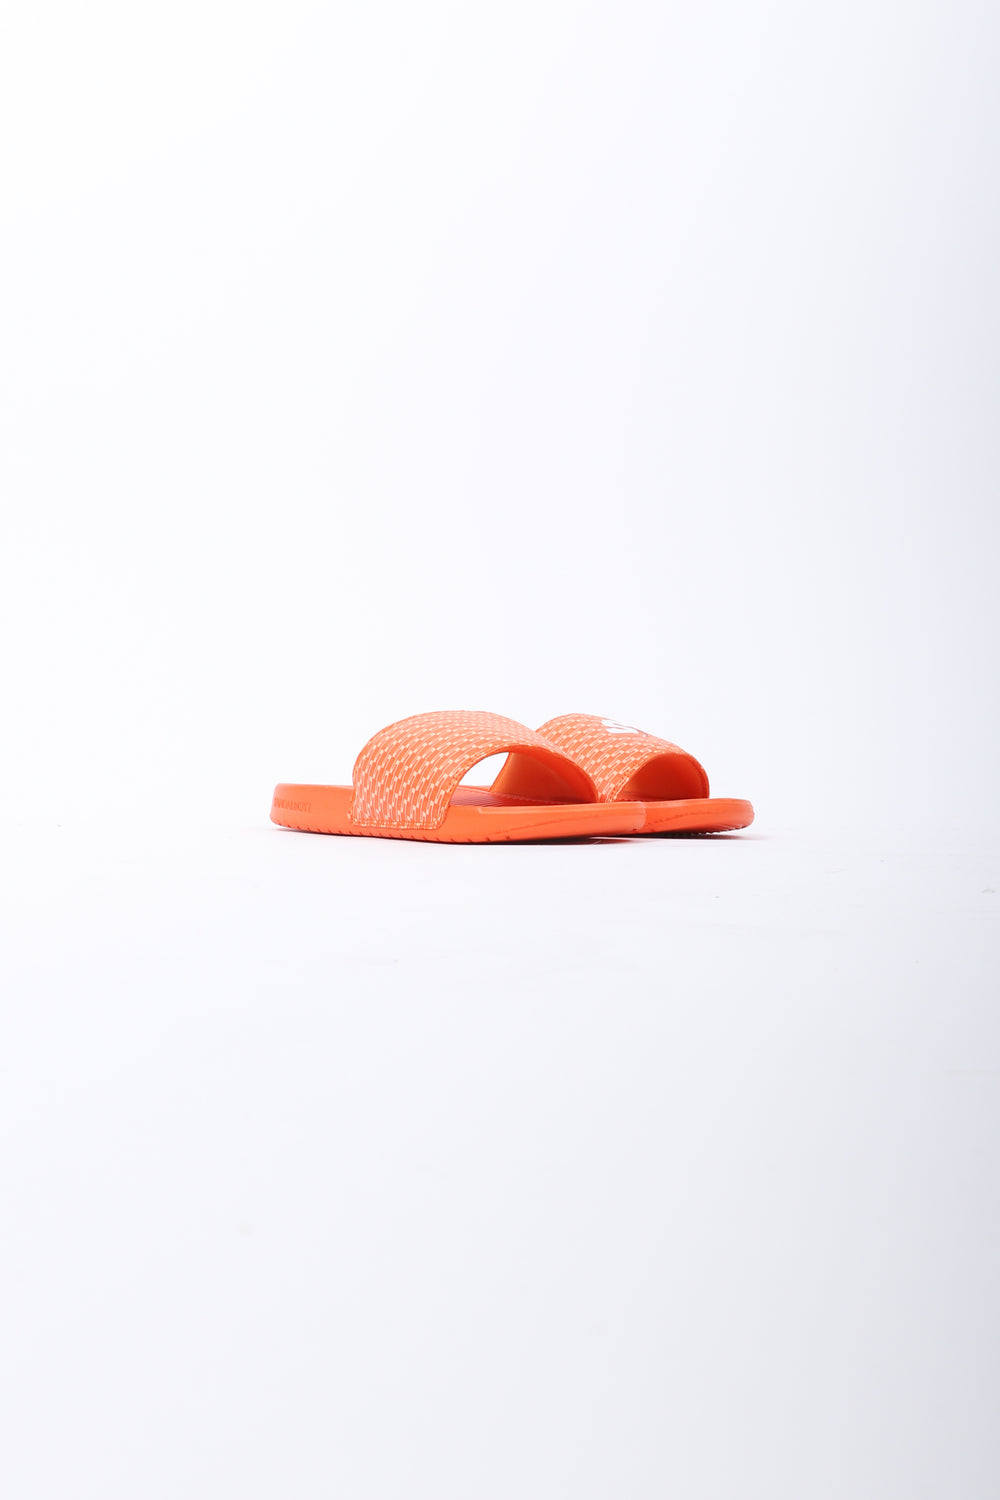 SandalBoyz Chroma Color Sandals In Mandarin